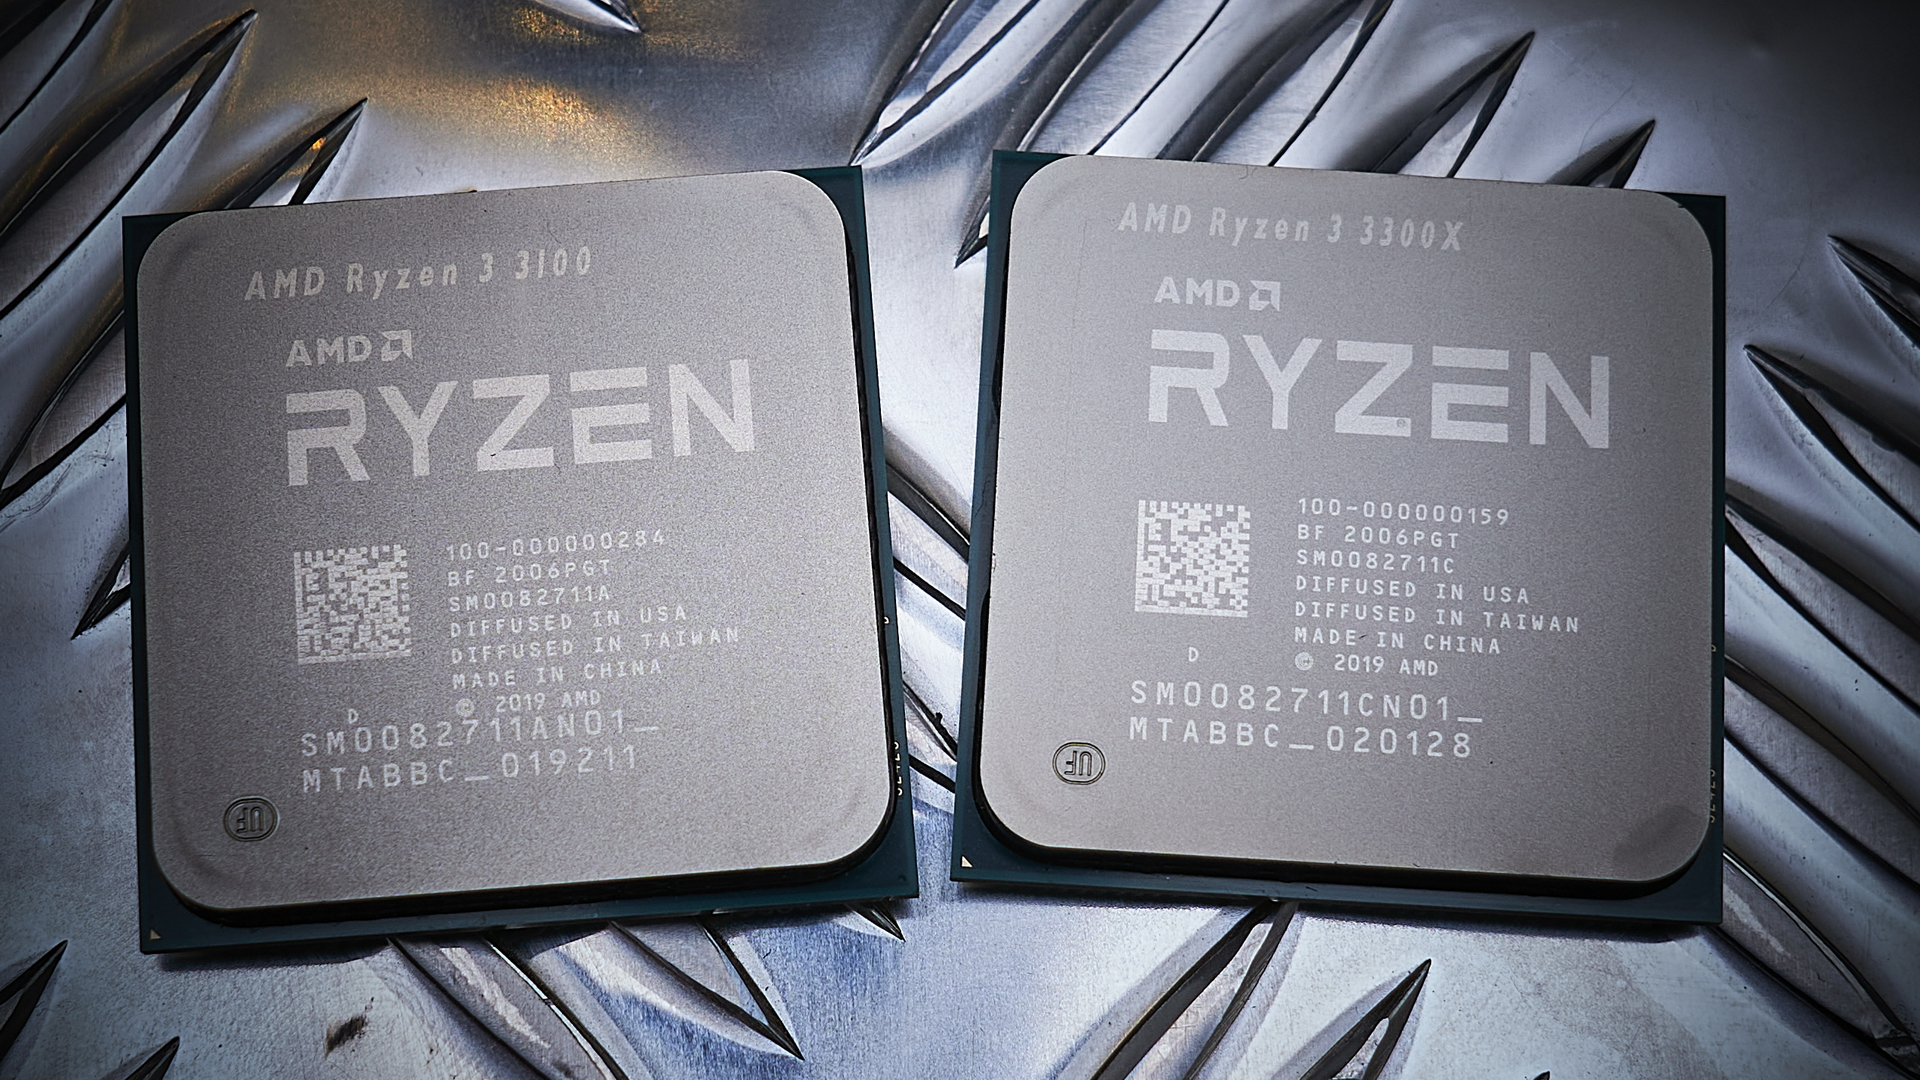 AMD Ryzen 3 3100 & 3300X review | WASD